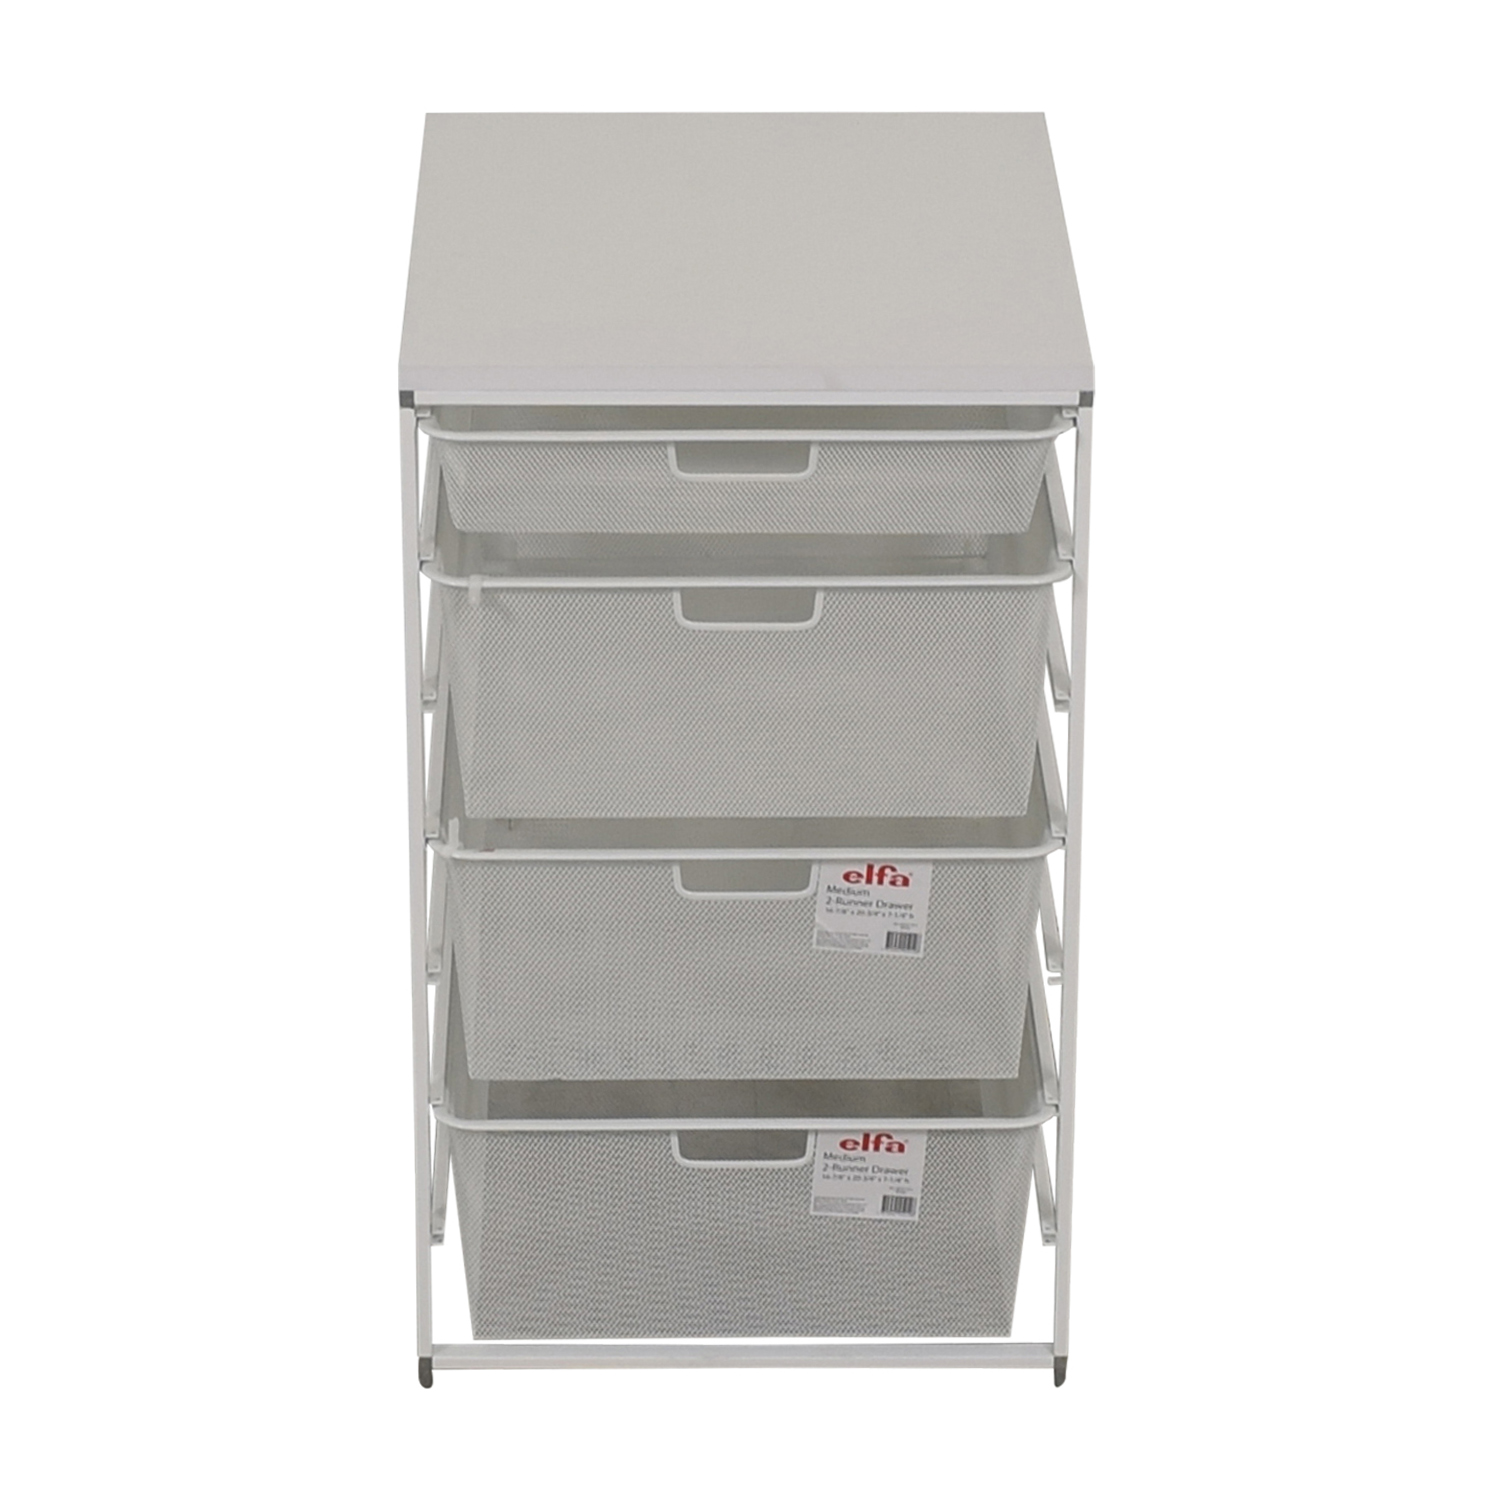 Elfa Elfa  White Mesh Closet Drawers coupon